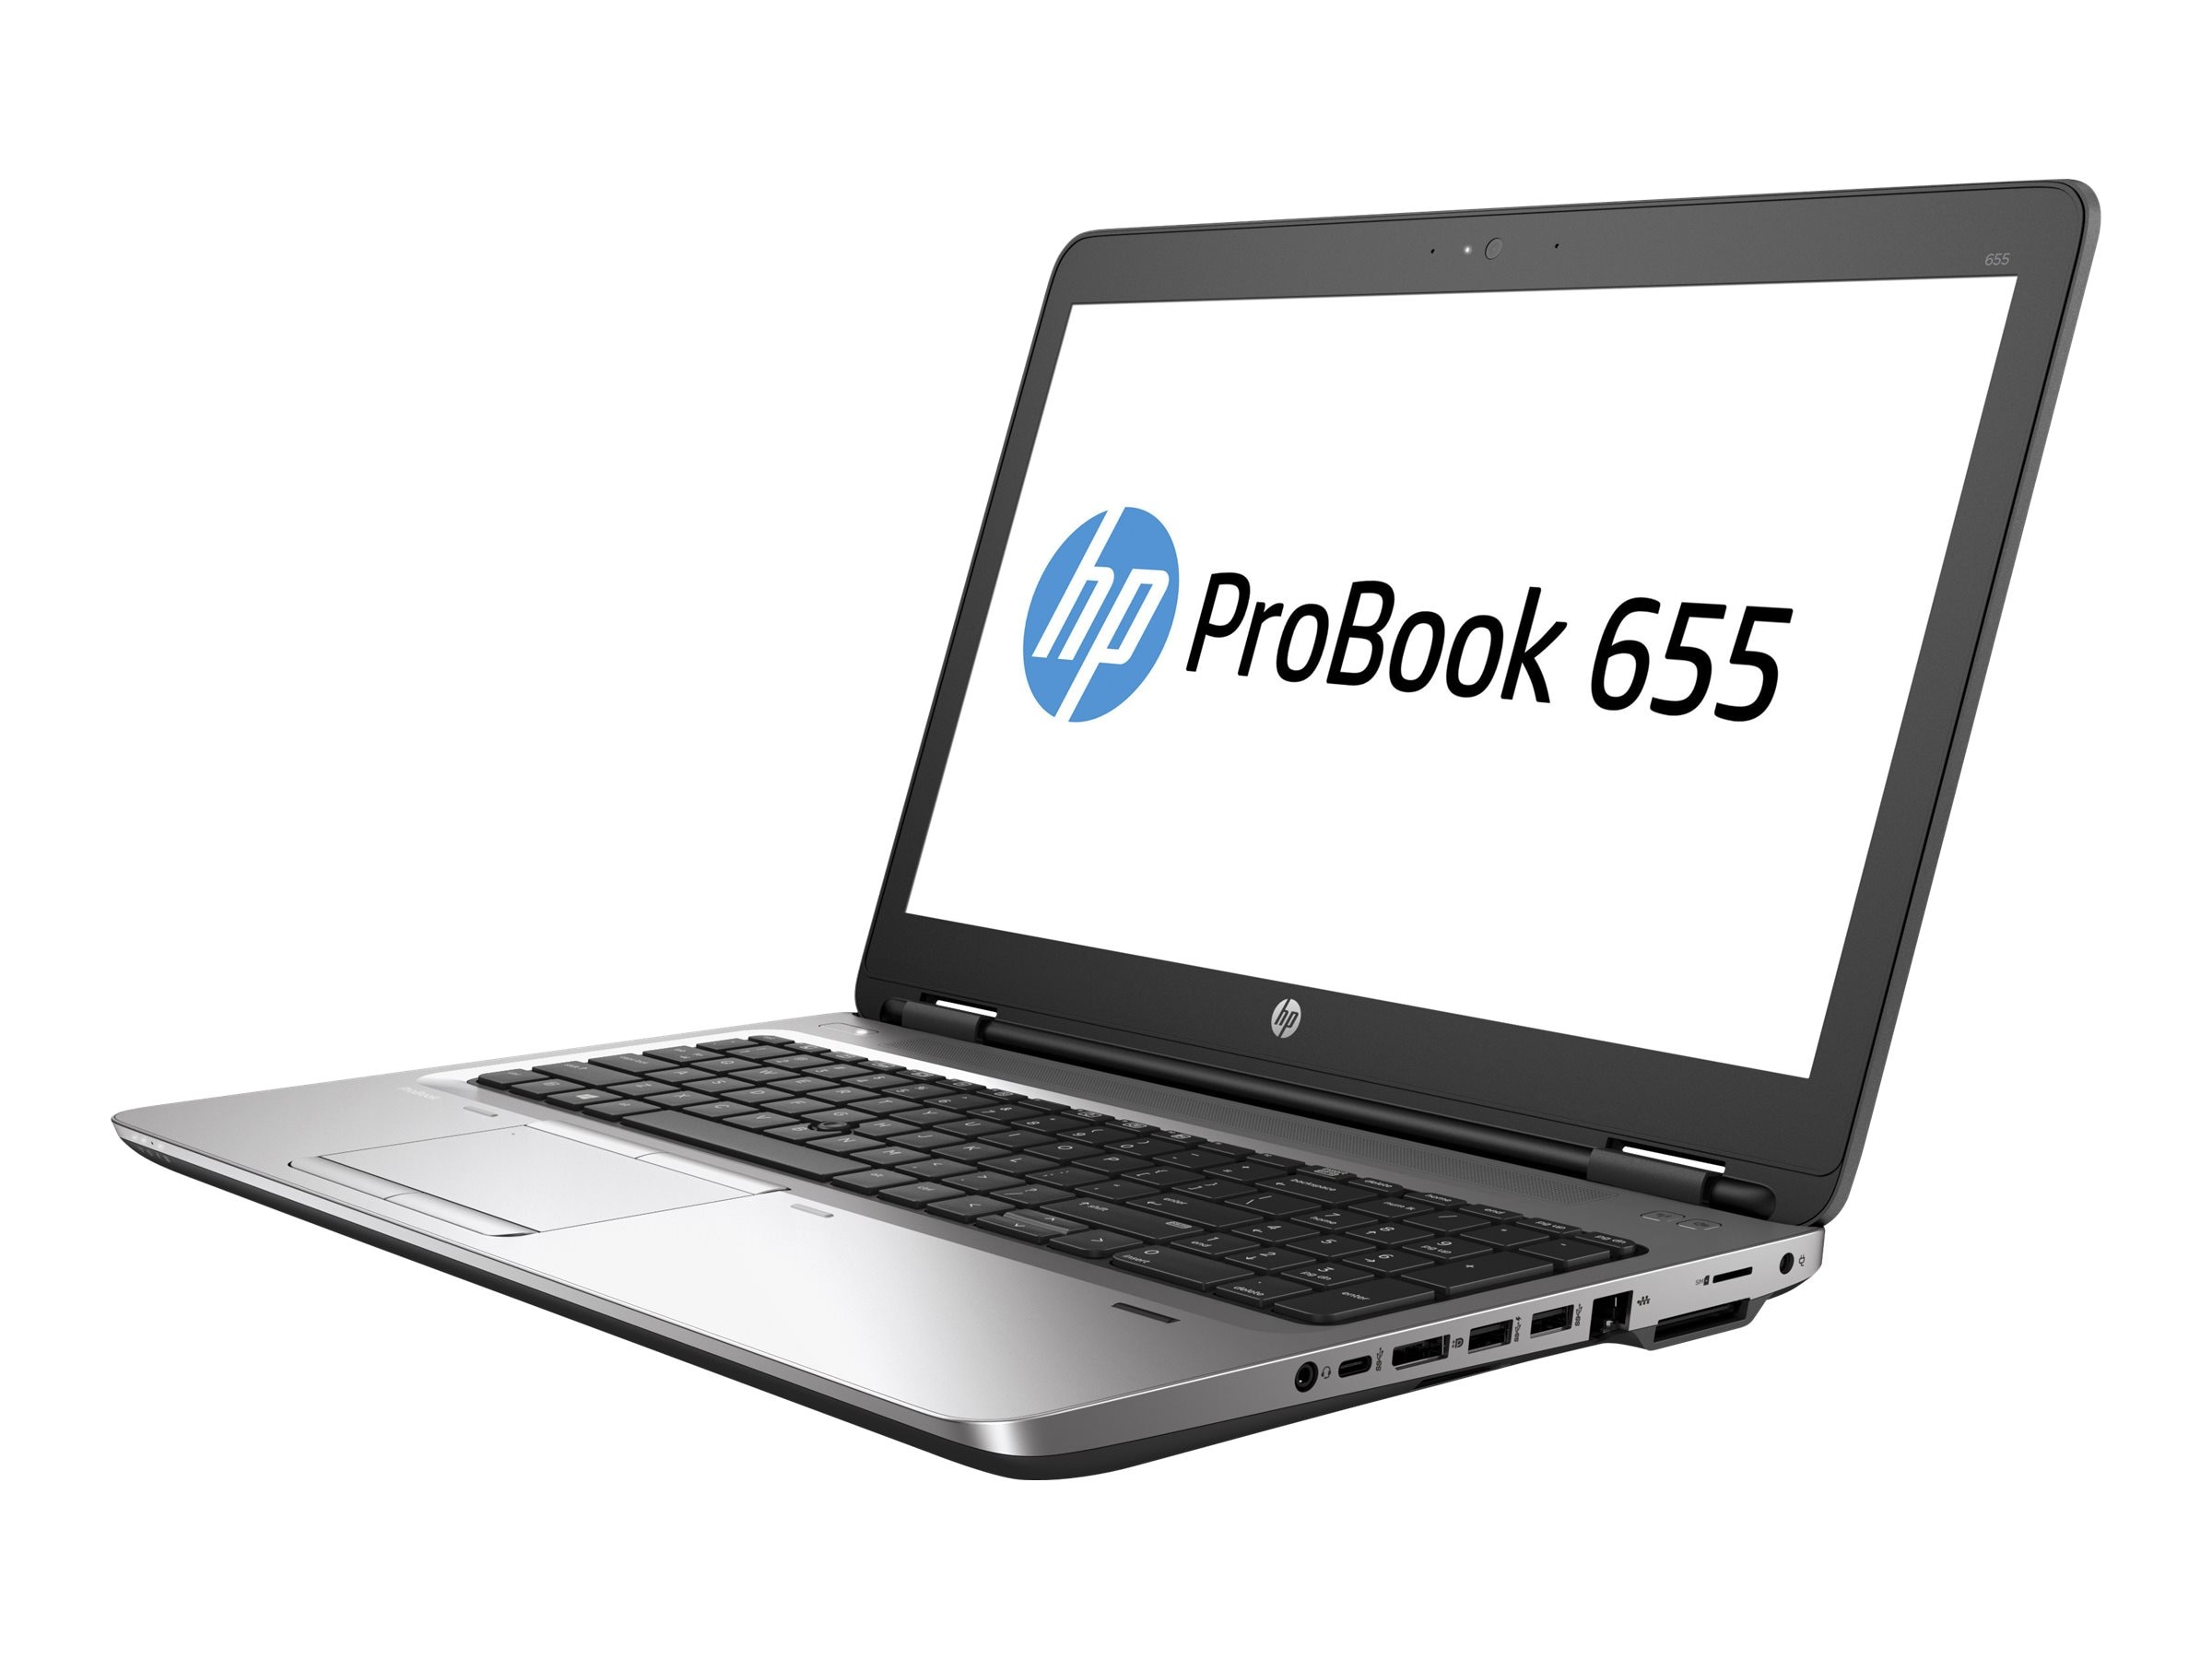 HP ProBook 655 G2 1.6GHz A6 15.6in display